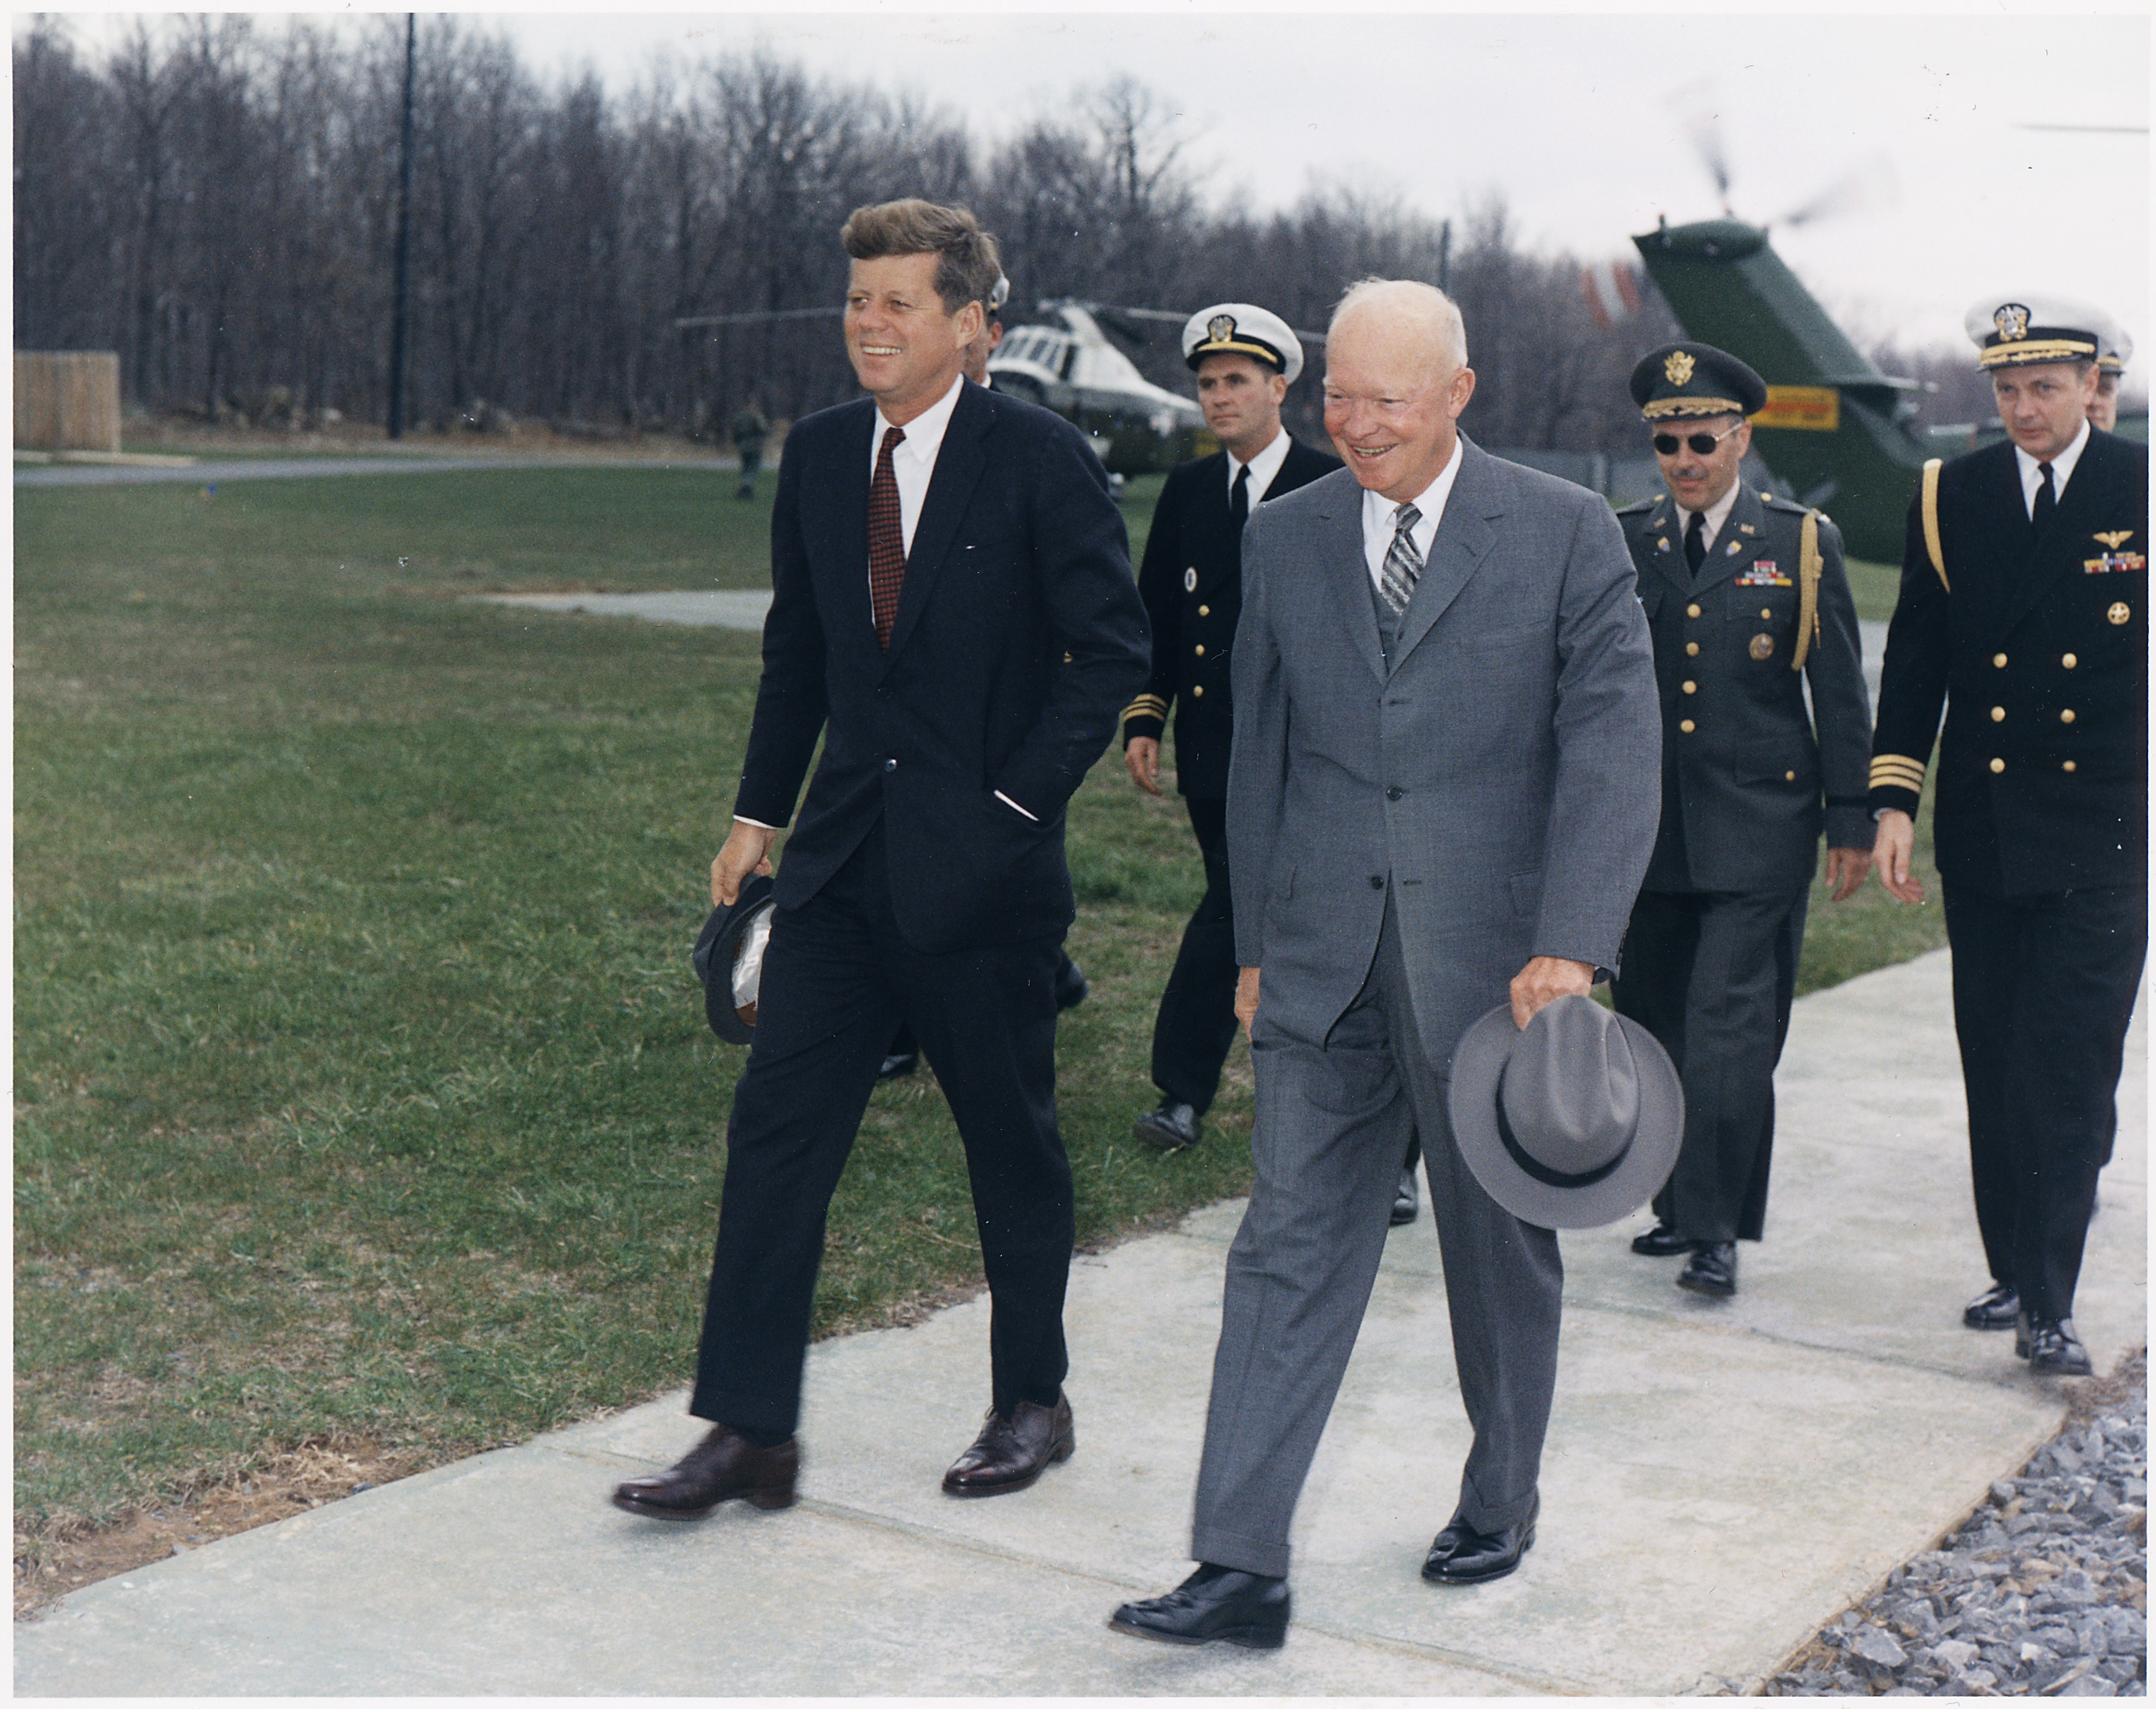 President John F. Kennedy and former President Dwight D. Eisenhower - Camp David, Maryland U.S.A. - 1960